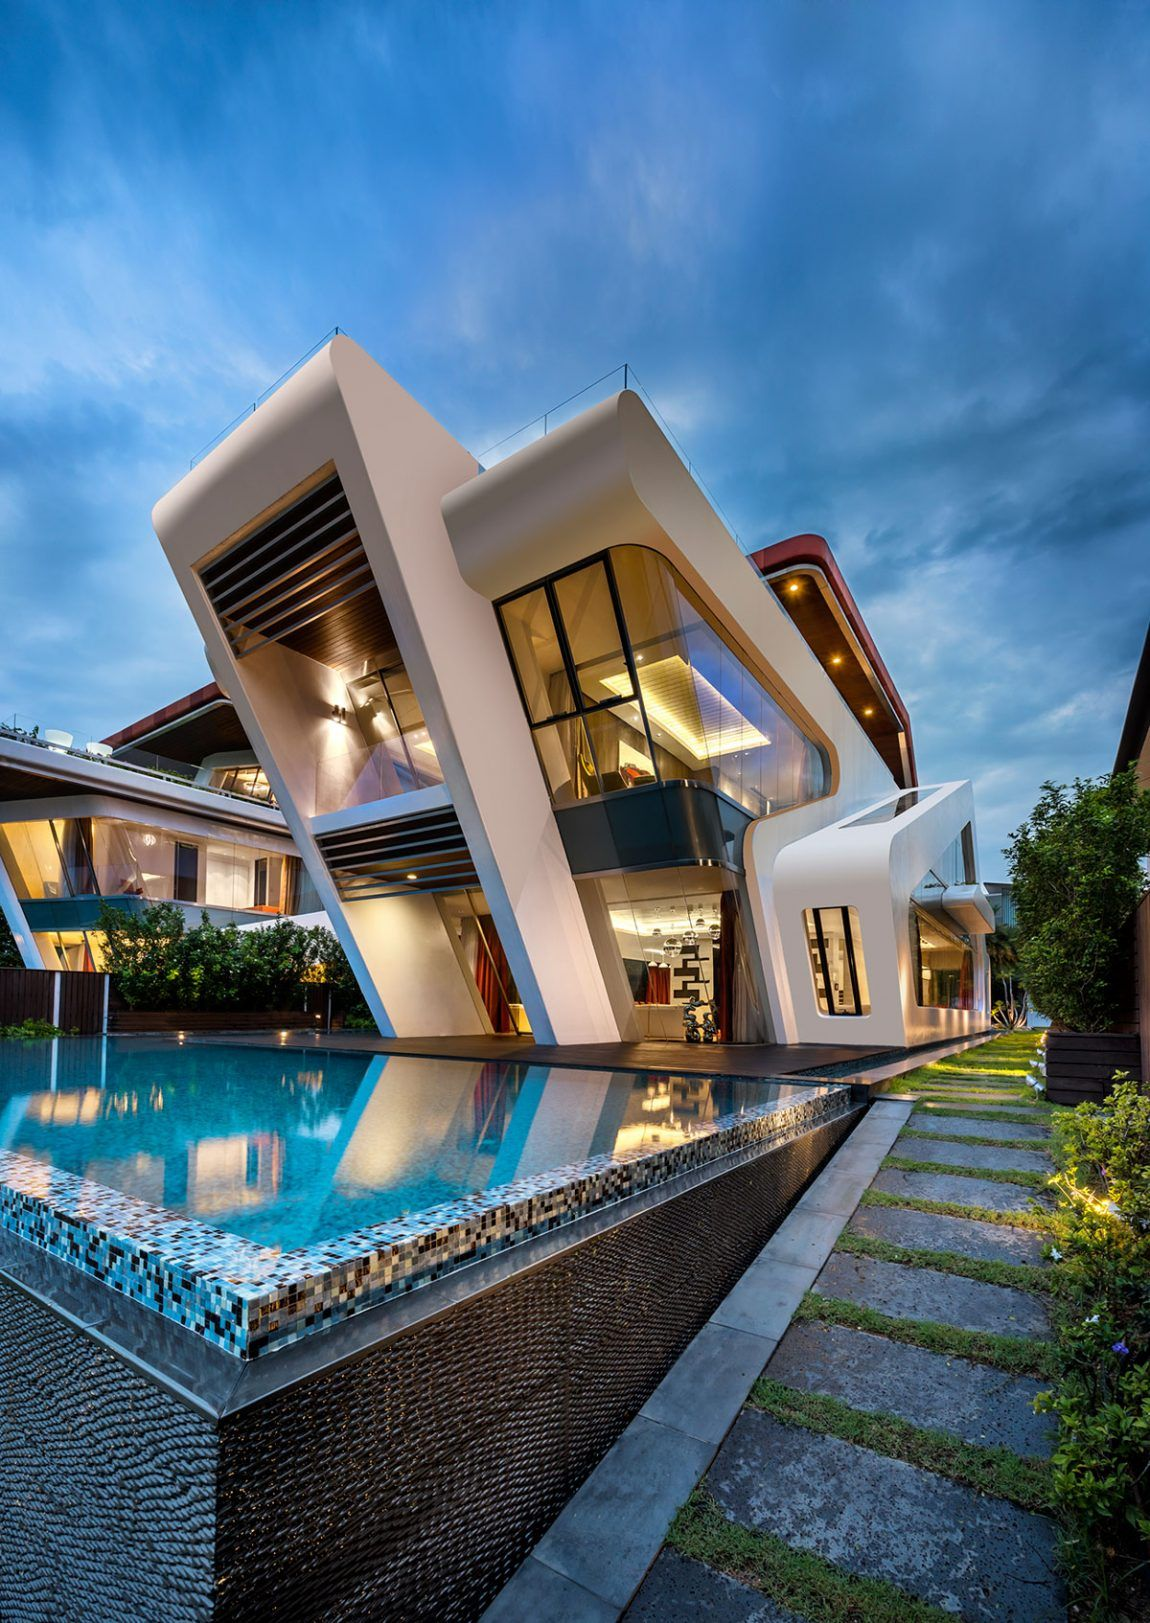 Mercurio Design Lab Create a Modern Villa in Singapore